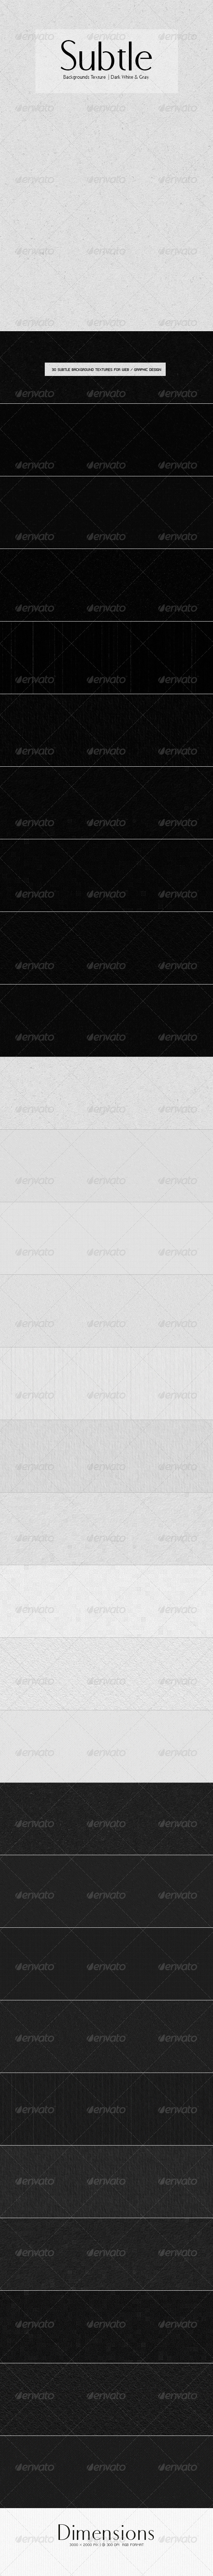 Subtle Backgrounds Texture - Dark White & Gray - Miscellaneous Backgrounds